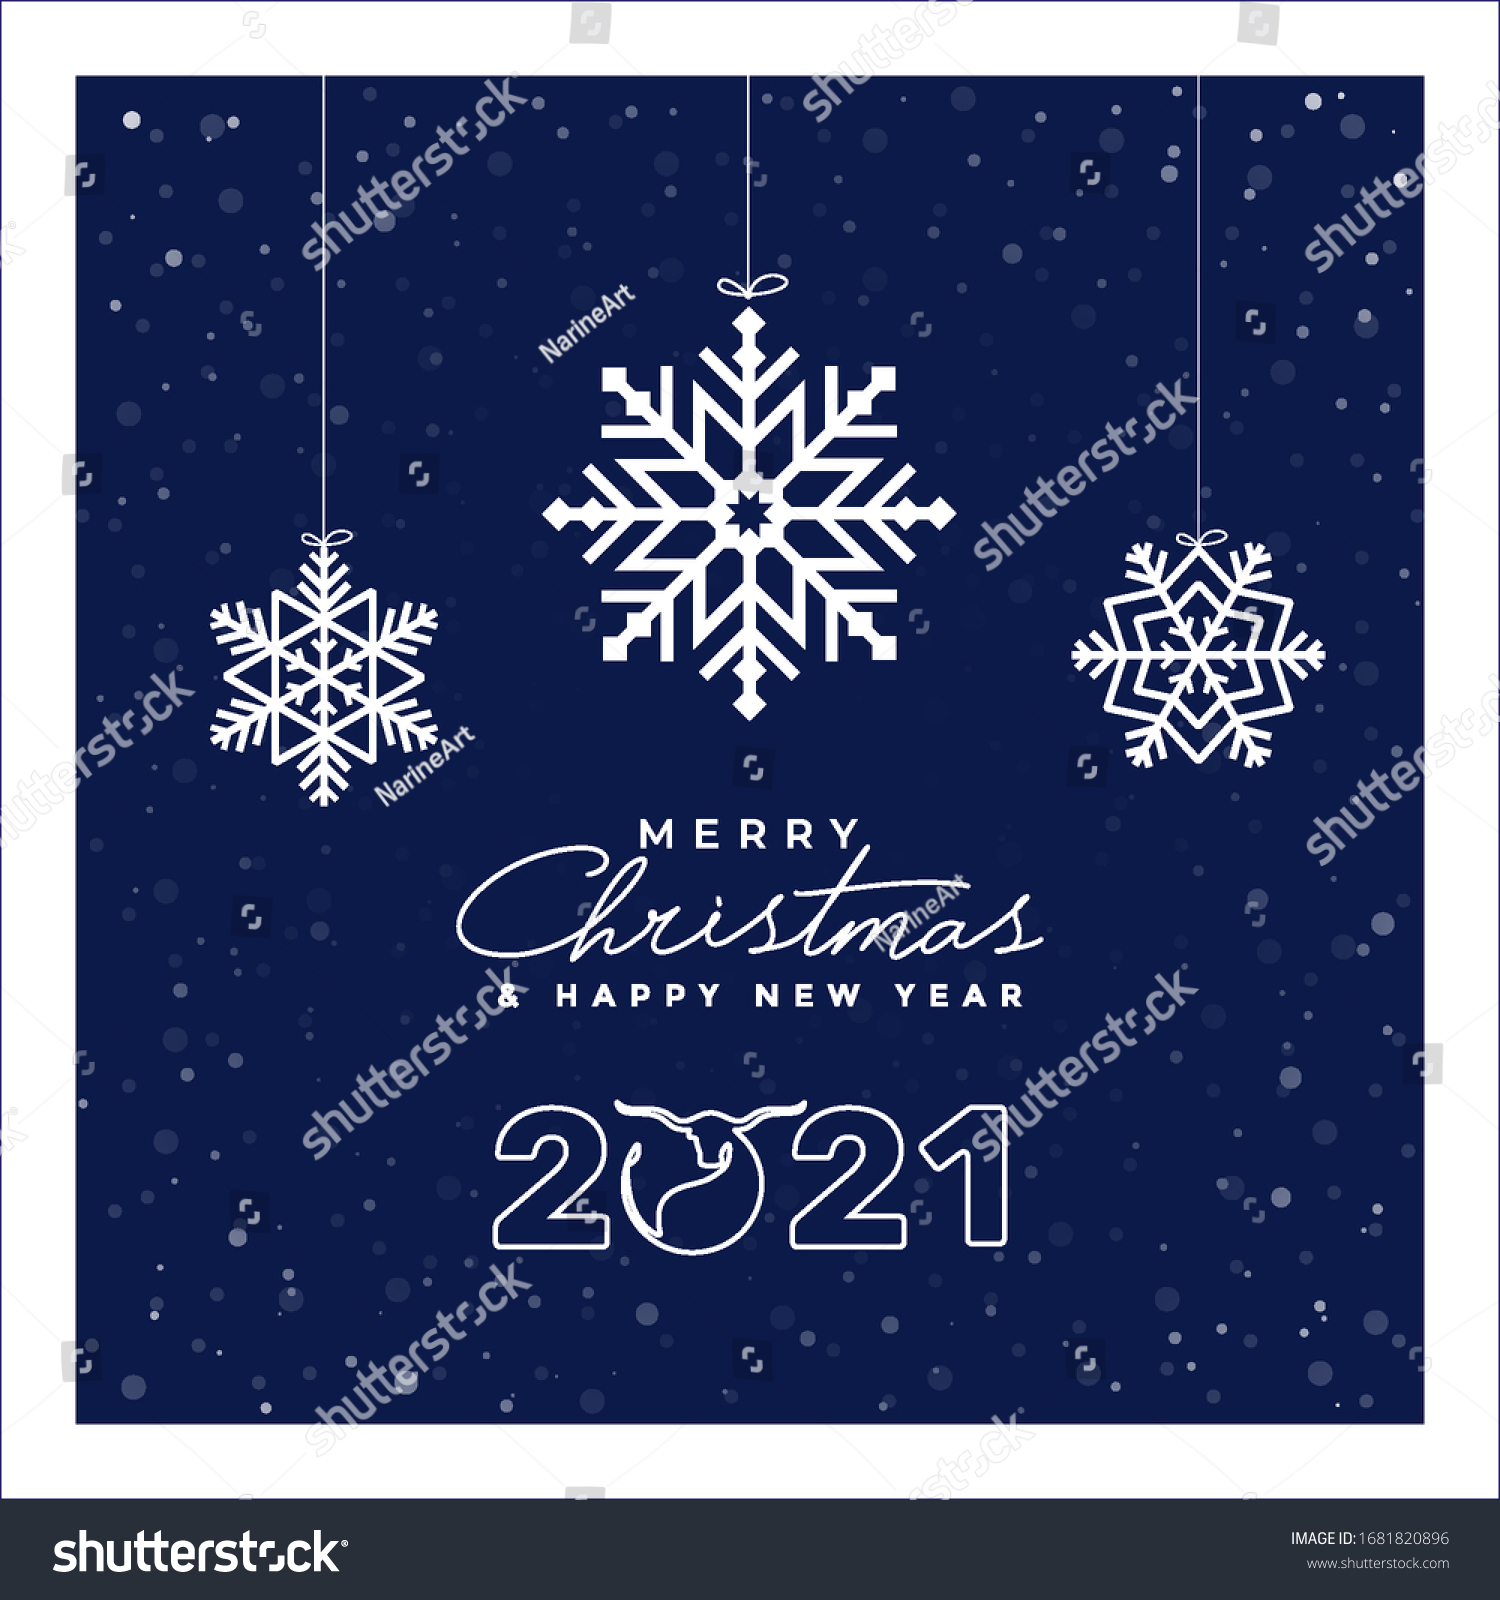 Hanging Banner Images Merry Christmas & Happy New Year 2021 Merry Christmas Happy New Year 2021 Stock Vector Royalty Free 1681820896